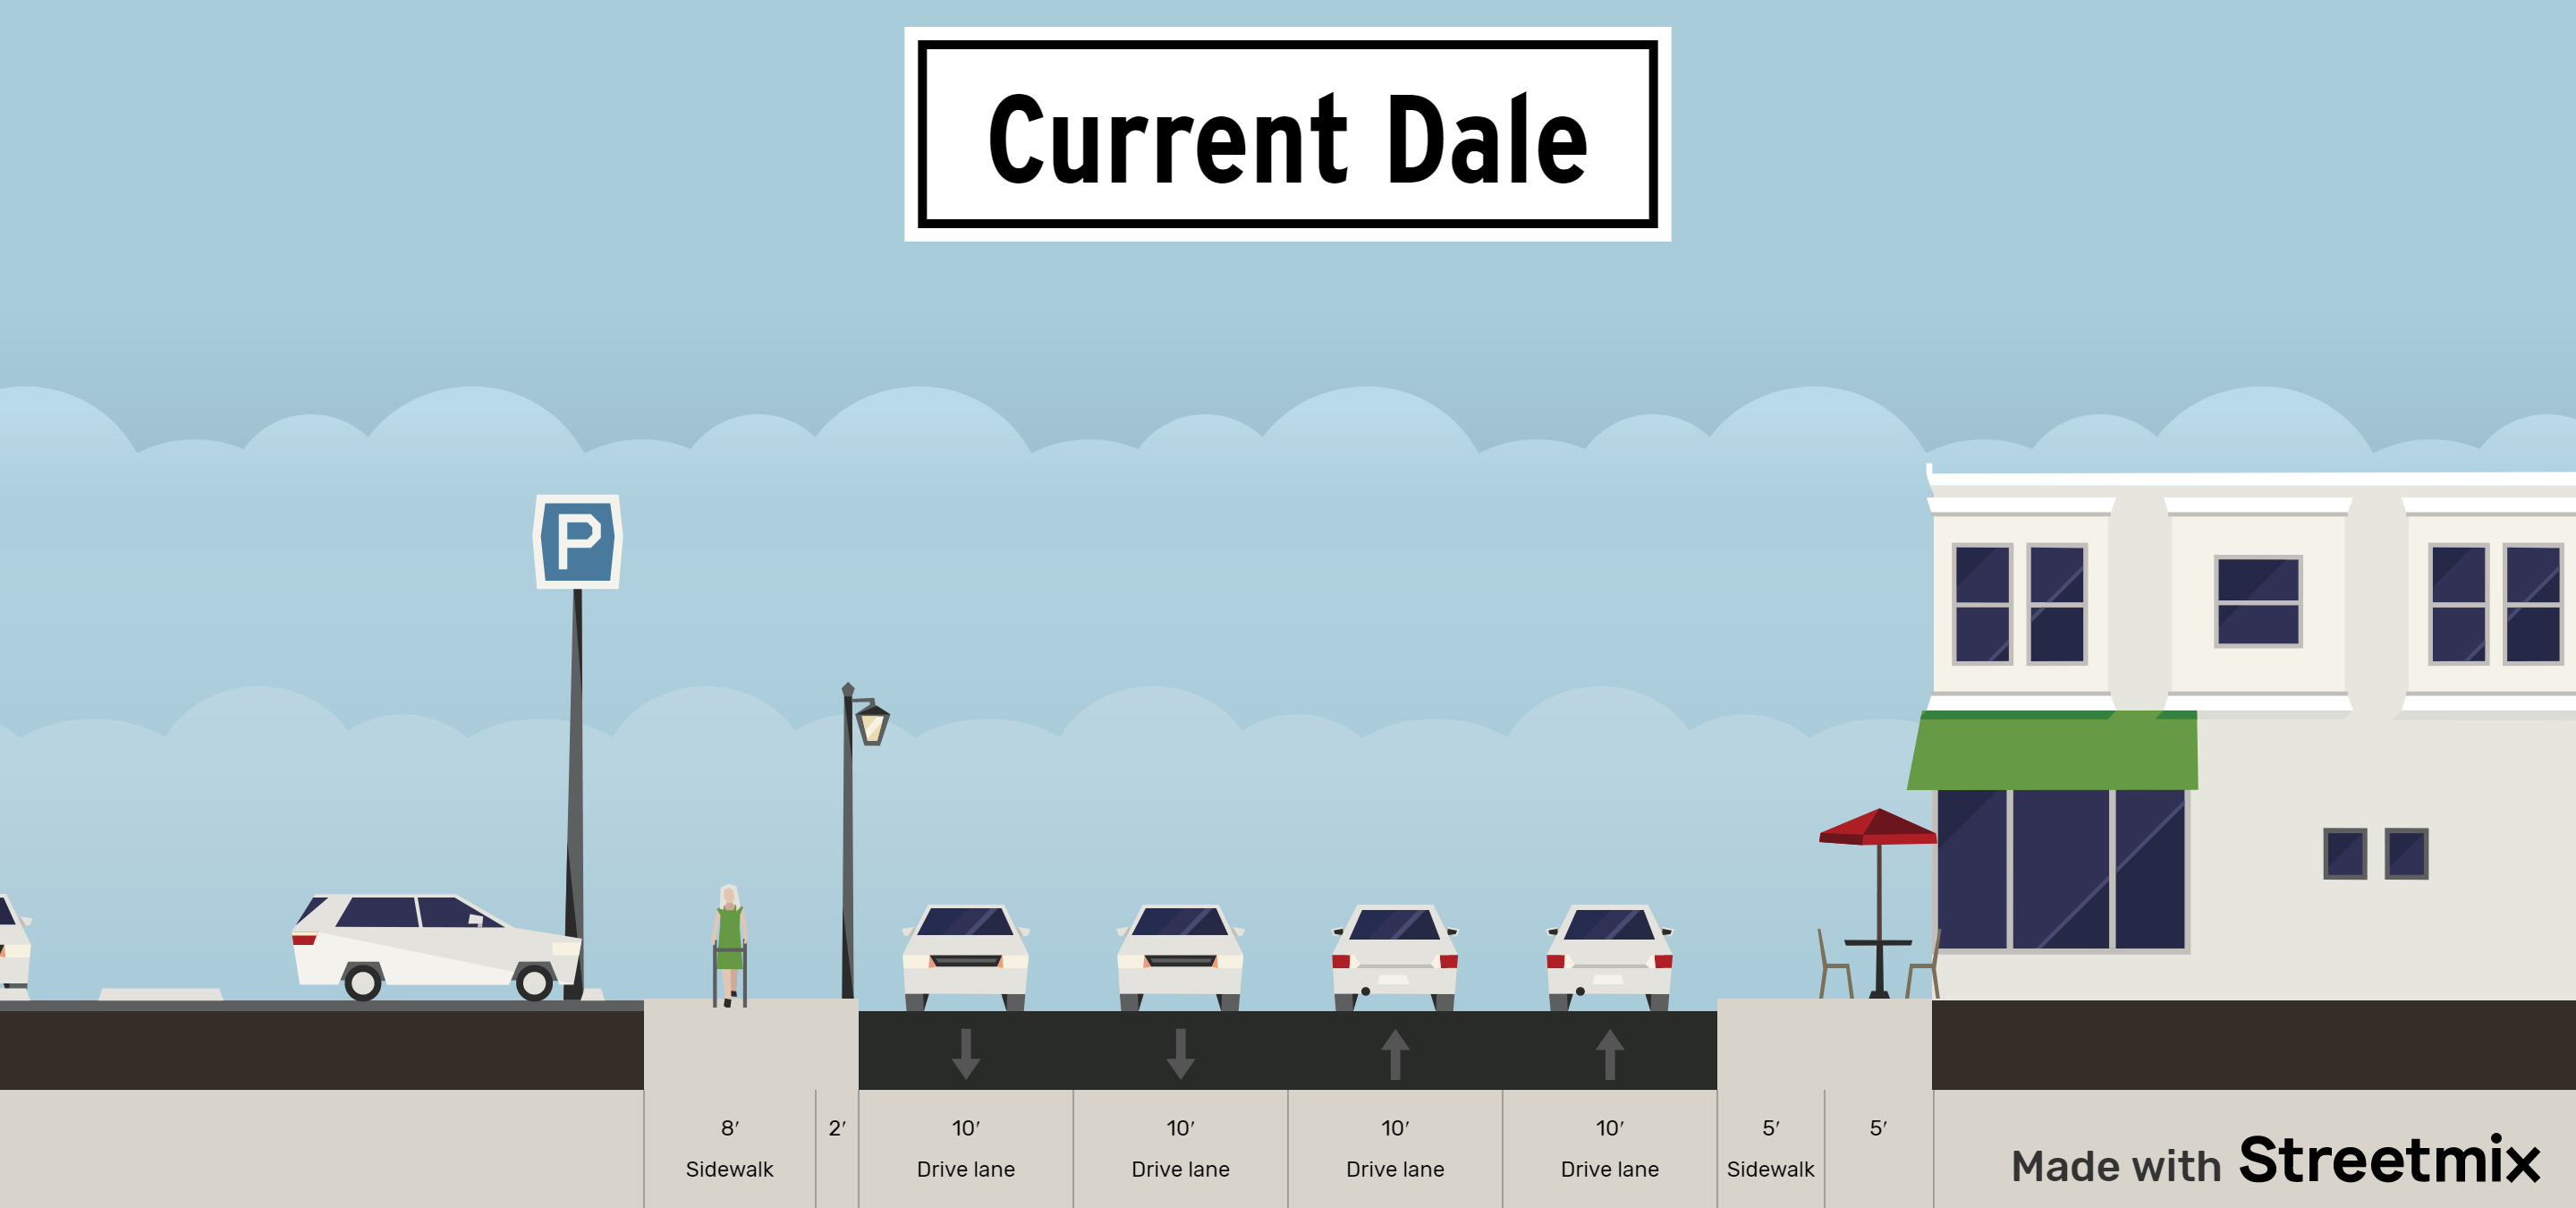 An informal representation of Dale Street's current cross section. A parking lot of the far left, a sidewalk, 2 approaching vehicle lanes, 2 lanes opposing those, and a sidewalk until the saloon.